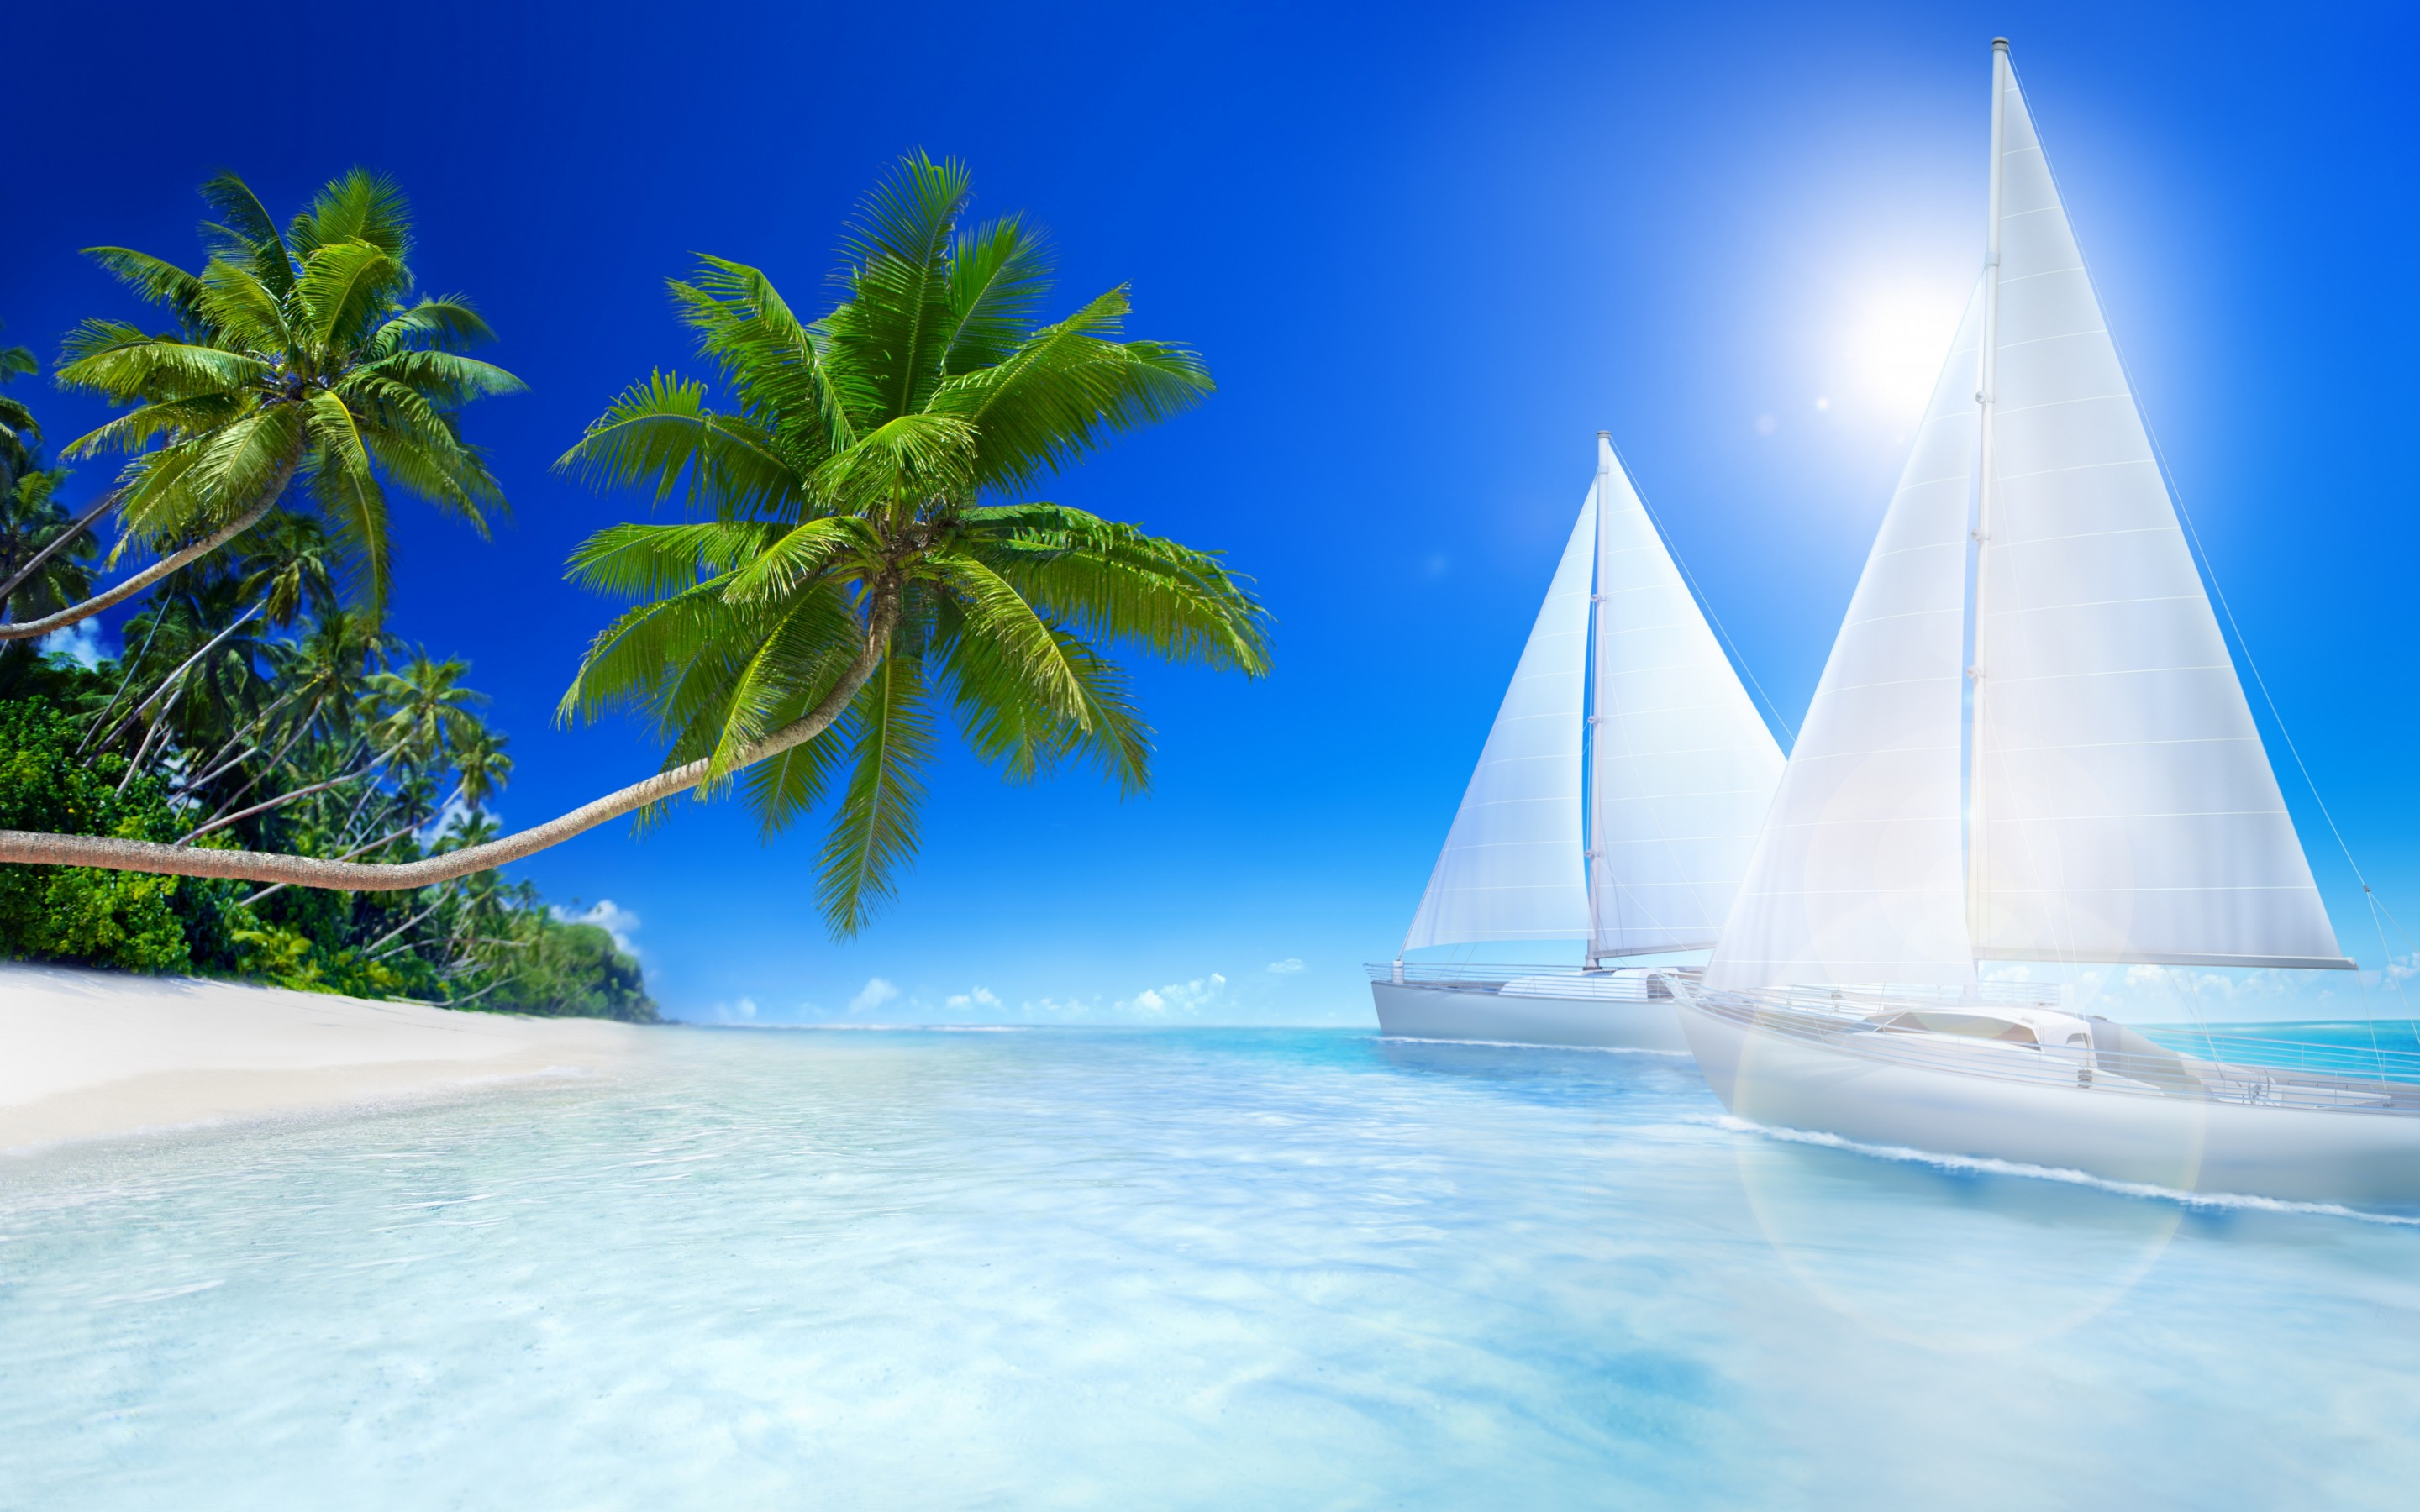 Cute Summer Wallpapers For Girls Tropical Beach Palms And Sailboat On The Sea